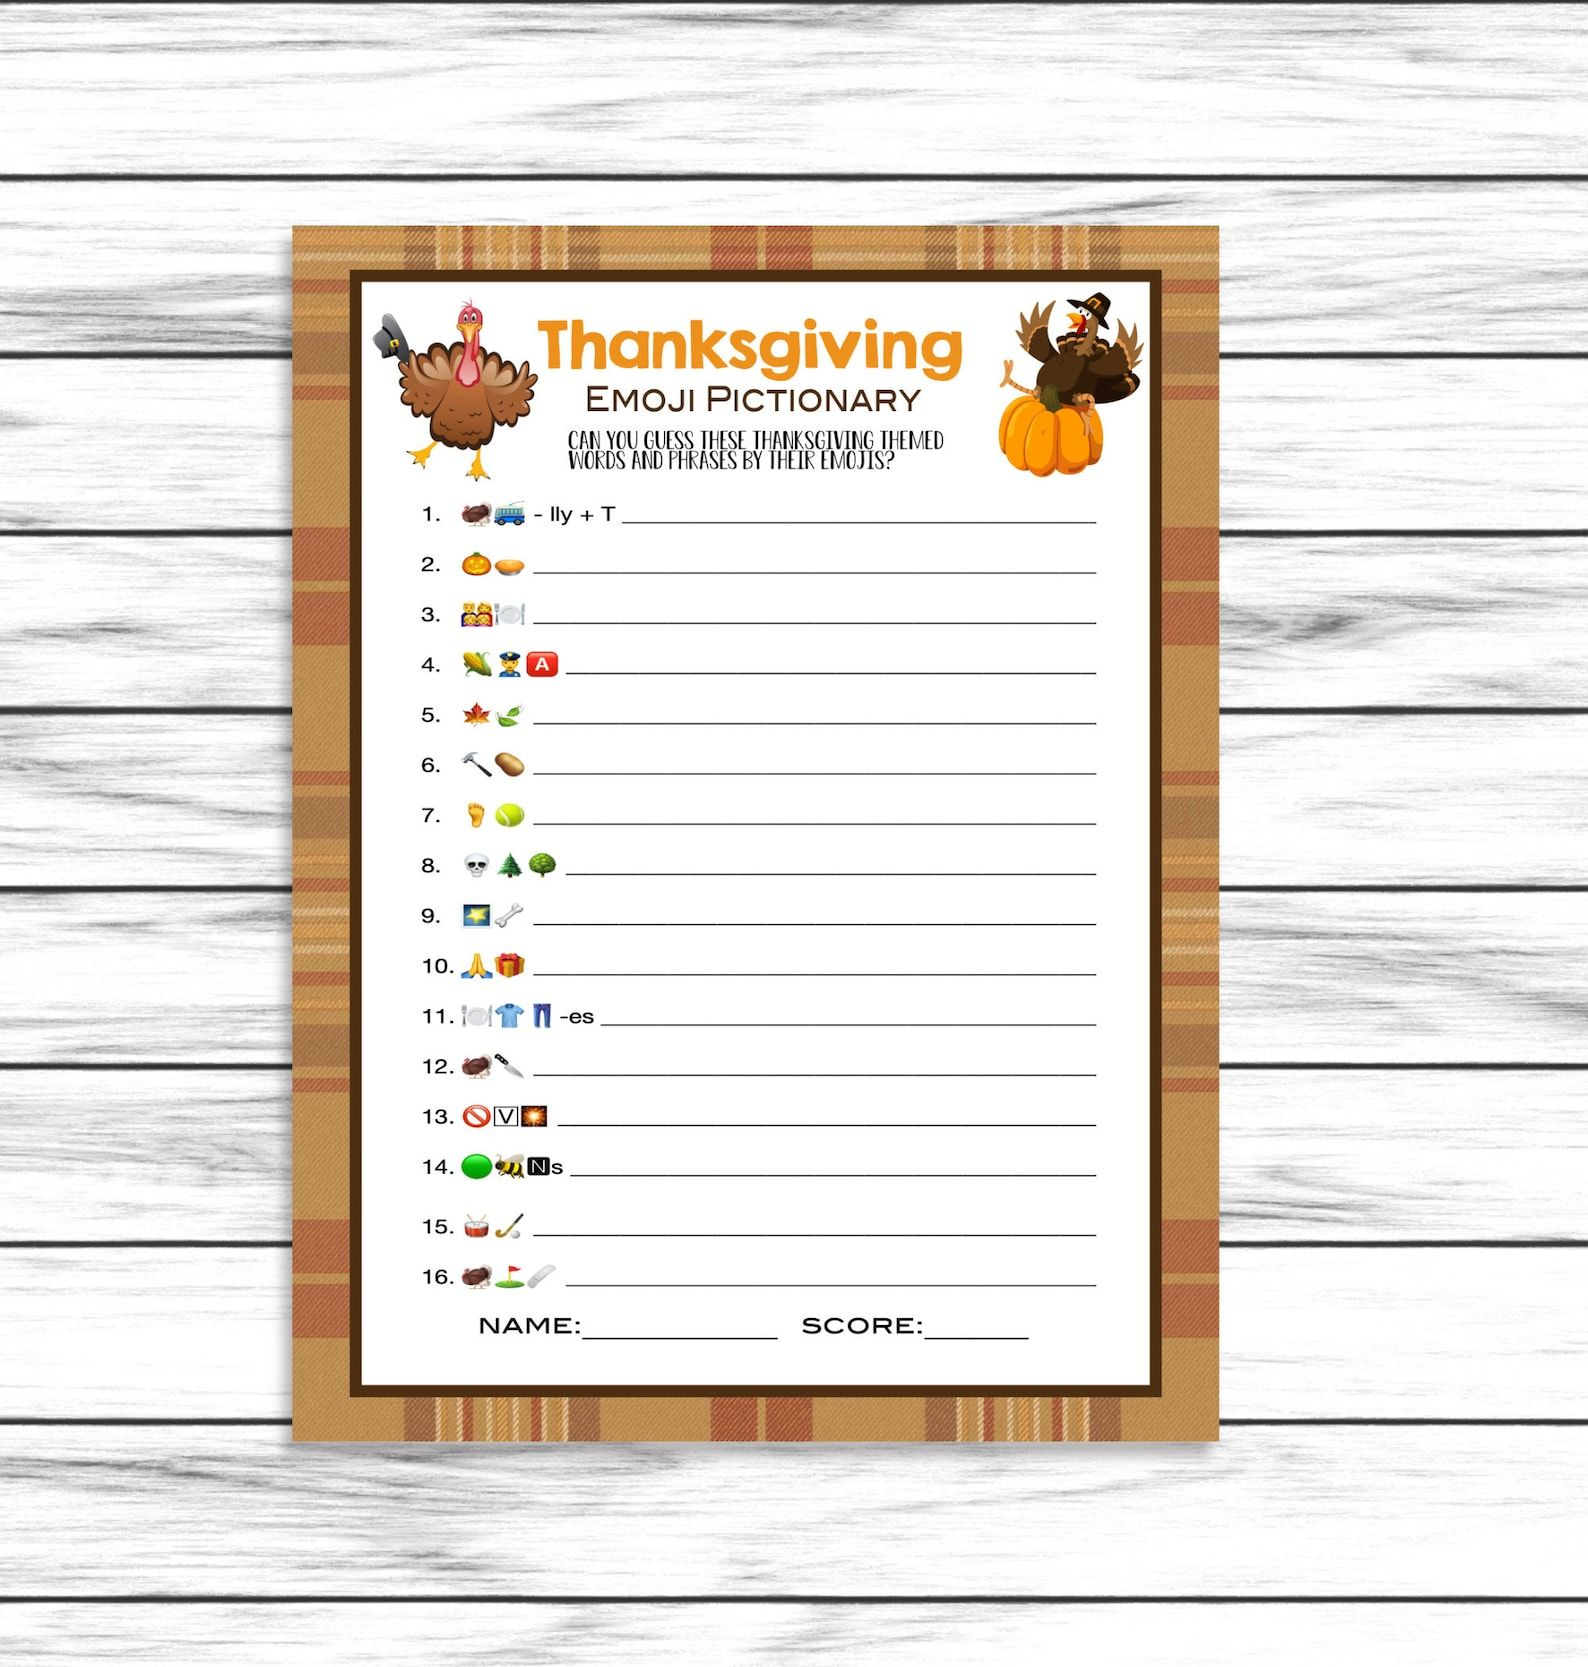 Thanksgiving Emoji Game Emoji Pictionary Party Game Emoji Etsy In 2020 Emoji Games Thanksgiving Family Games Thanksgiving Games